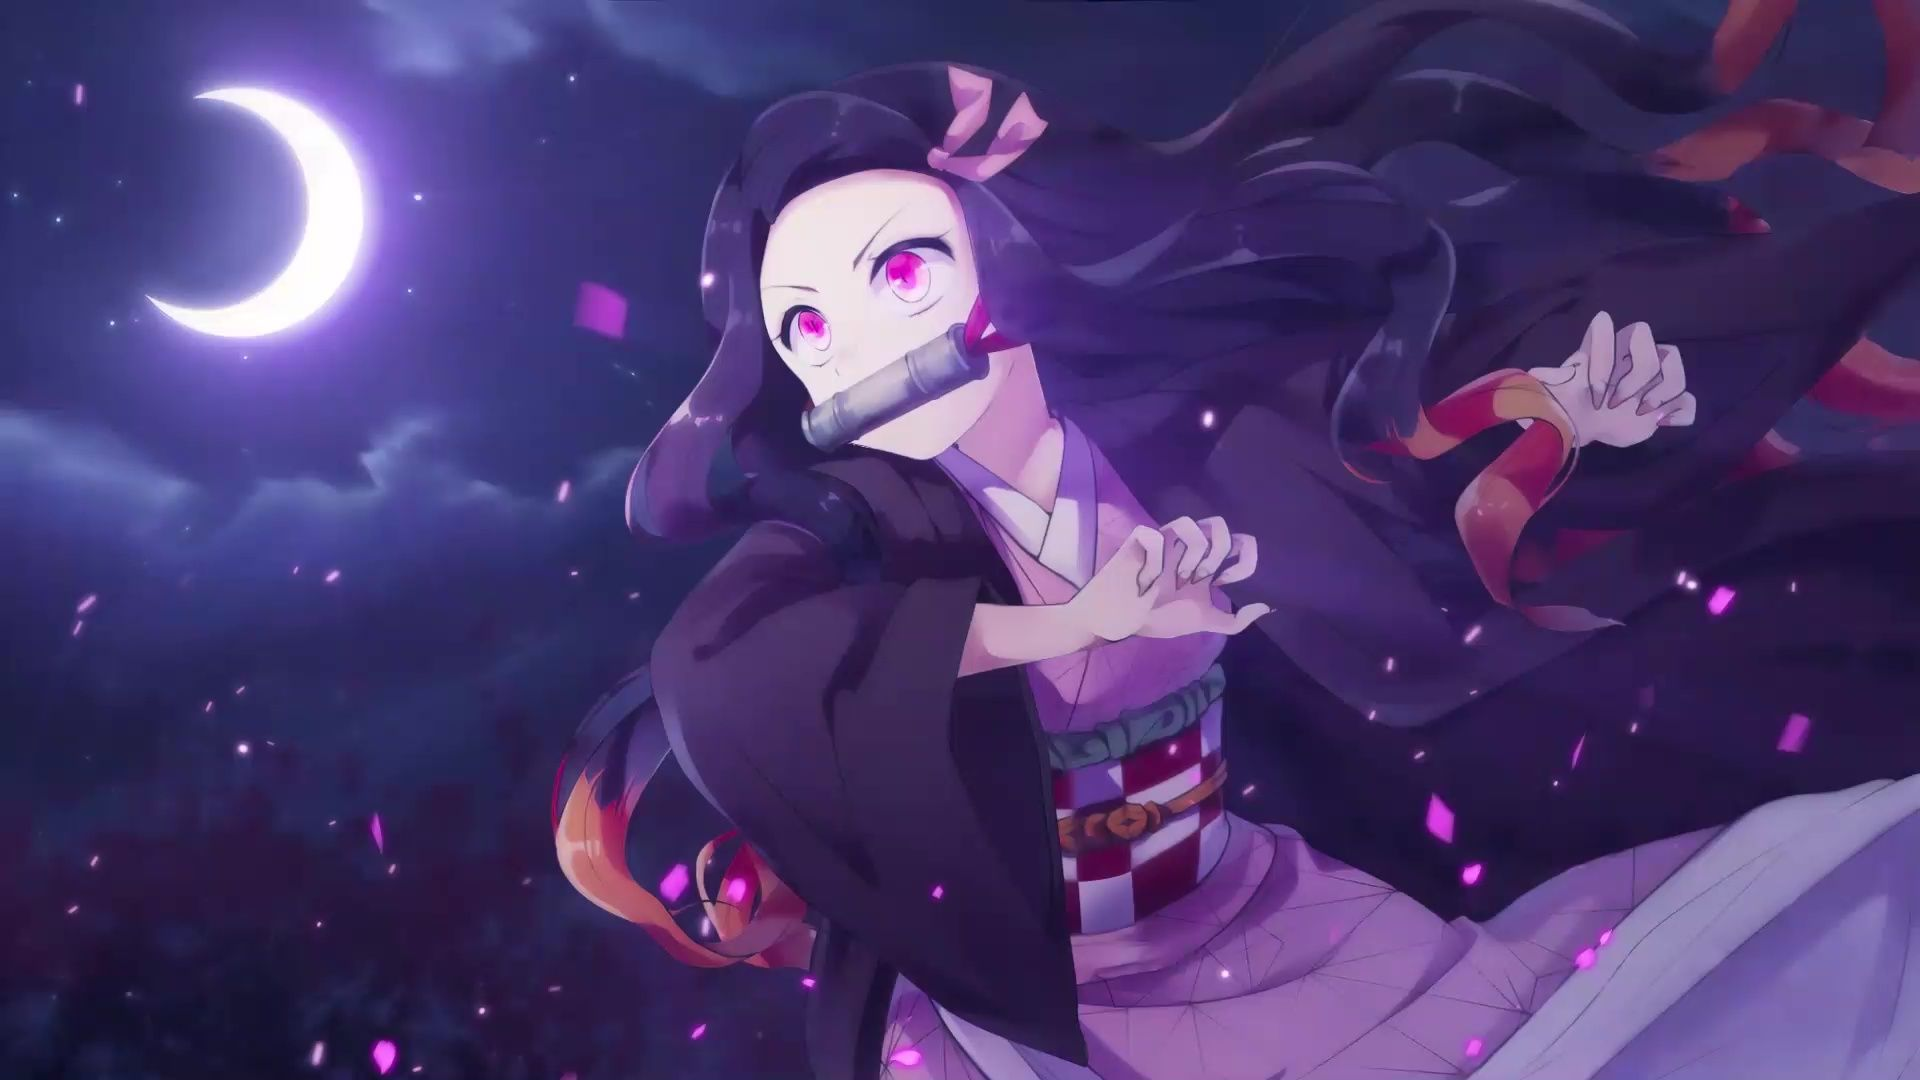 Nezuko Kamado Kimesu No Yaiba Live Wallpaper Anime Backgrounds Wallpapers Cute Desktop Wallpaper Cute Wallpapers For Computer